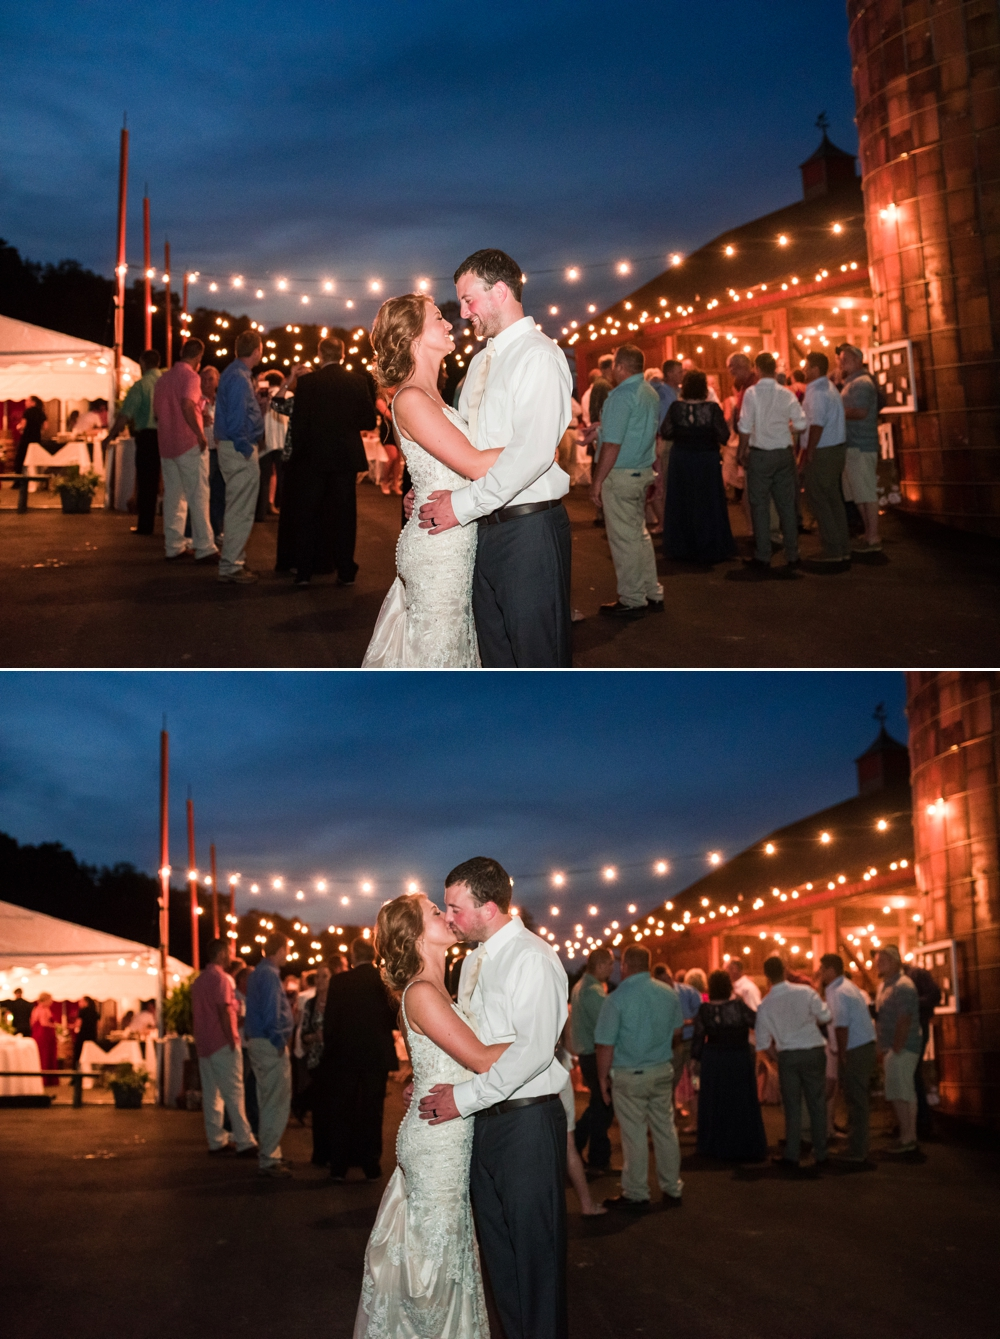 Romantic Farm Barn Wedding Rustic Chic Westminster Maryland Katie Vee Photography